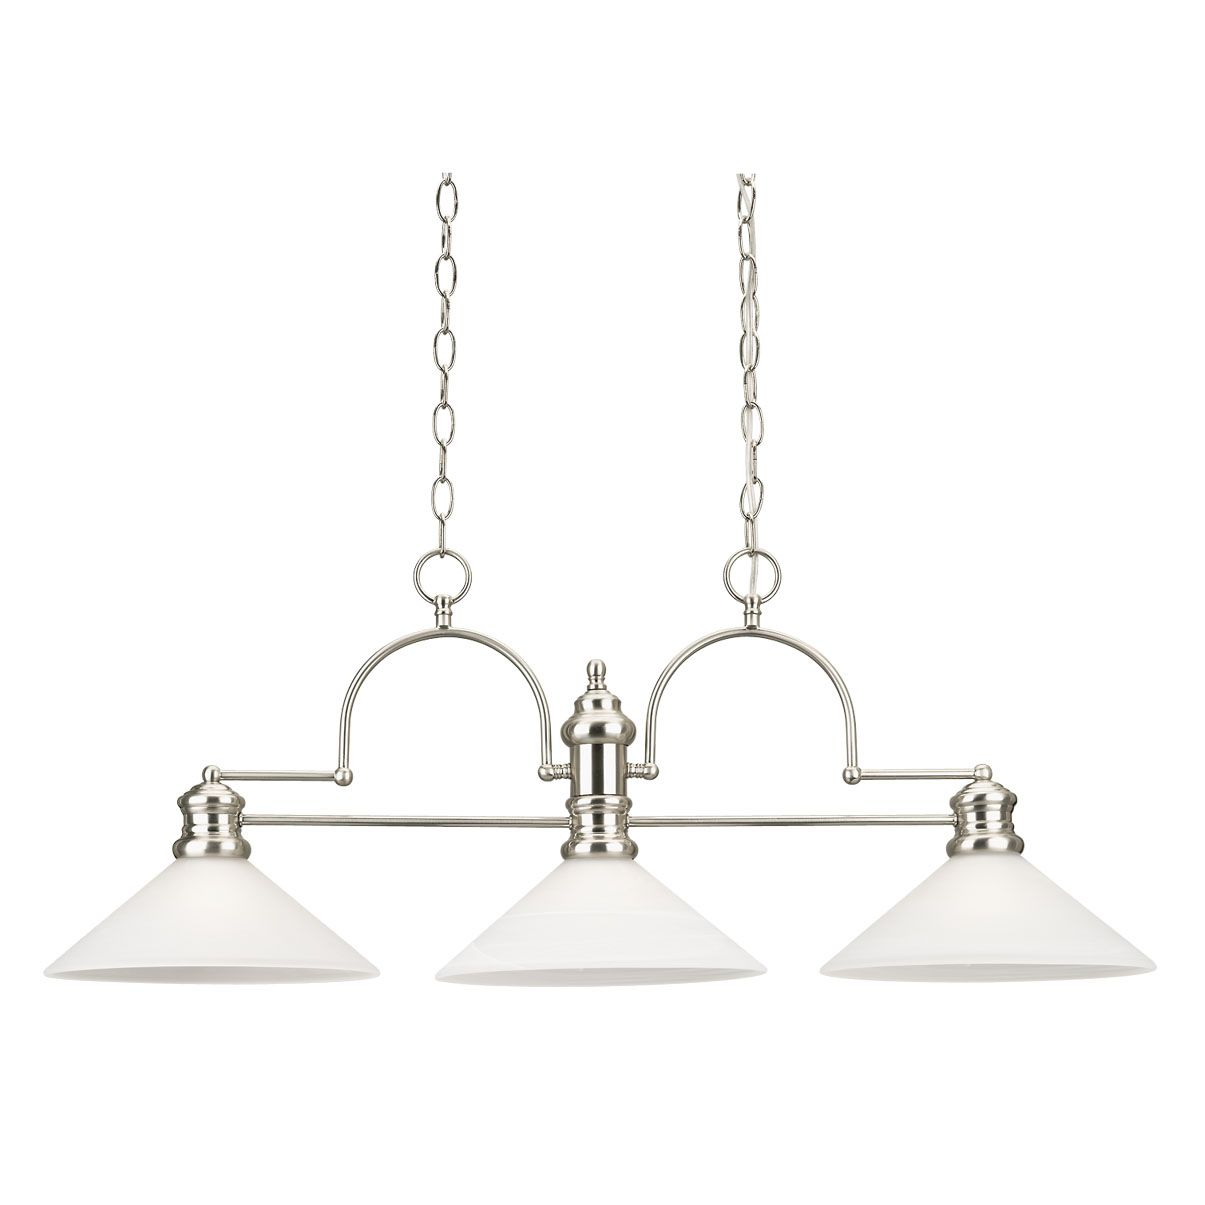 Westinghouse Lighting 6922200 3 Light Island Pendant Brushed Nickel Finish with Frosted White Alabaster Glass